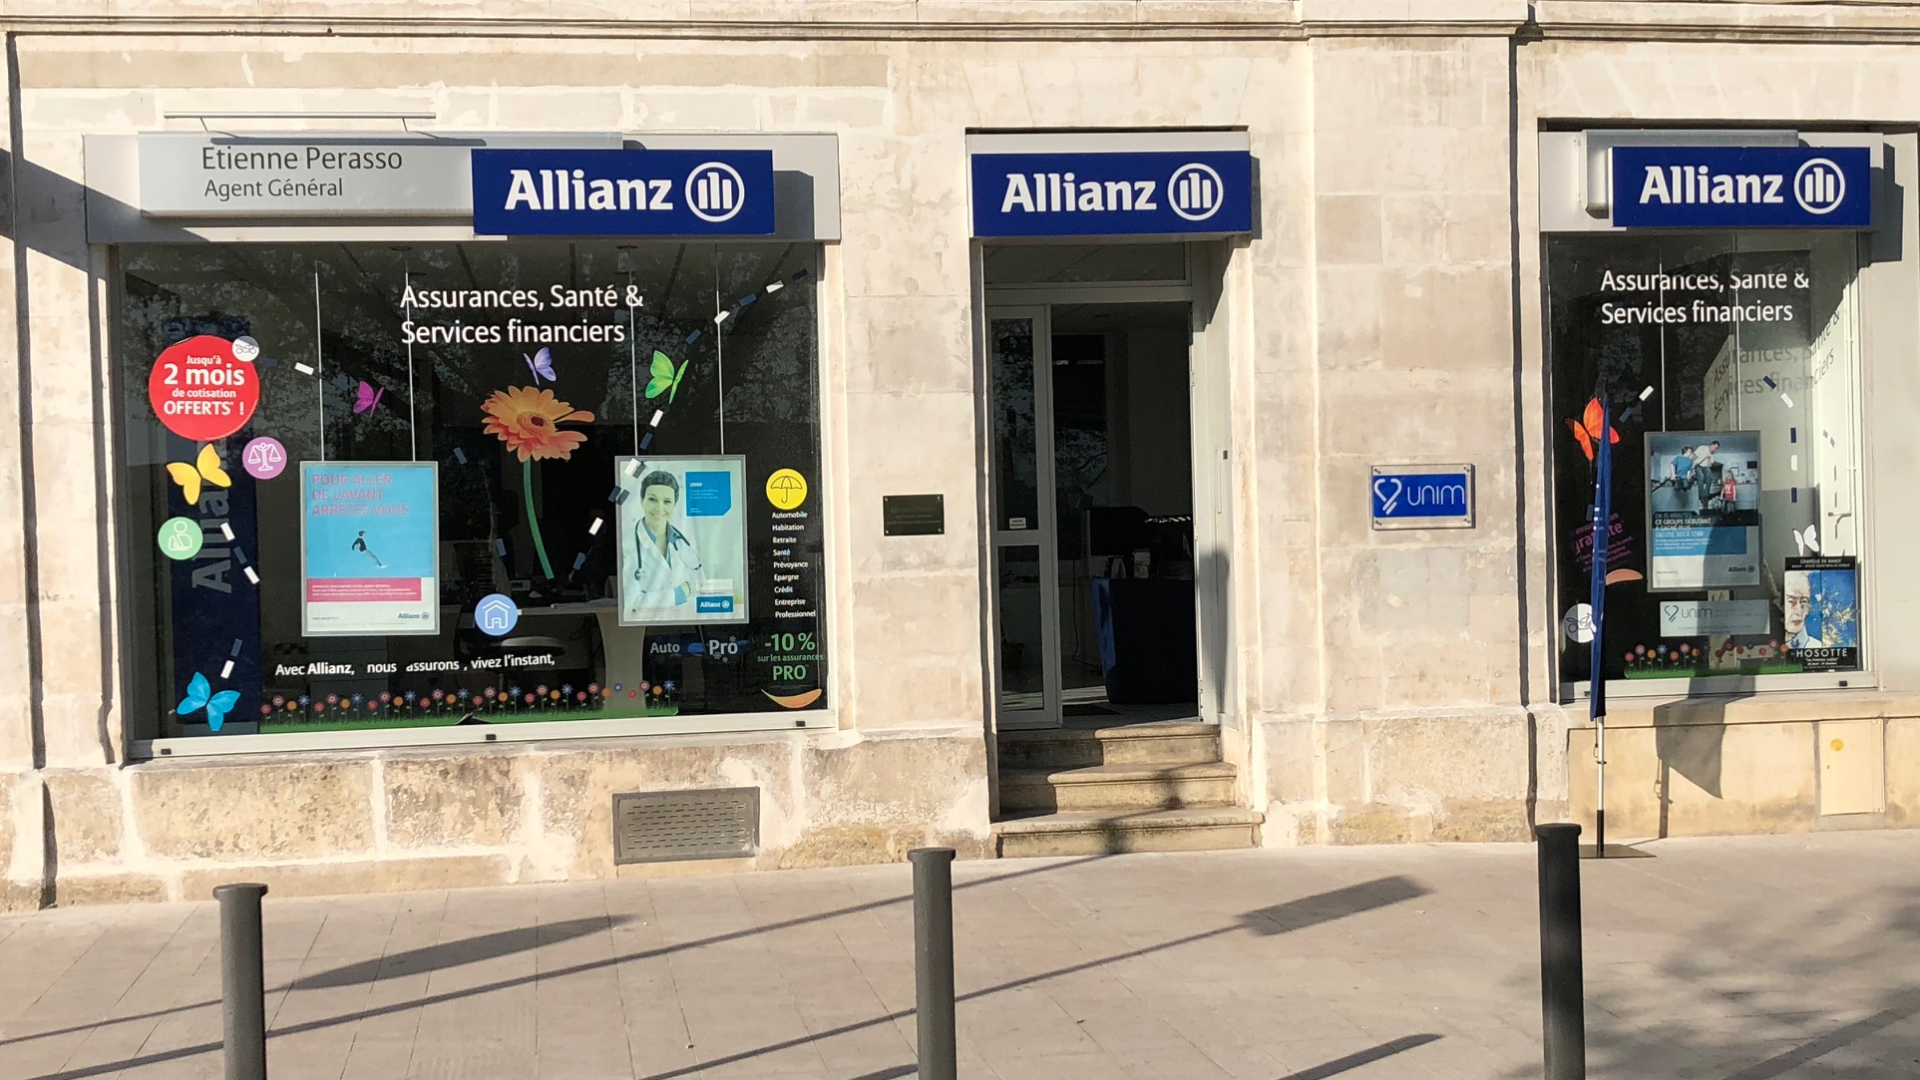 Allianz Auxerre paul bert - Etienne PERASSO